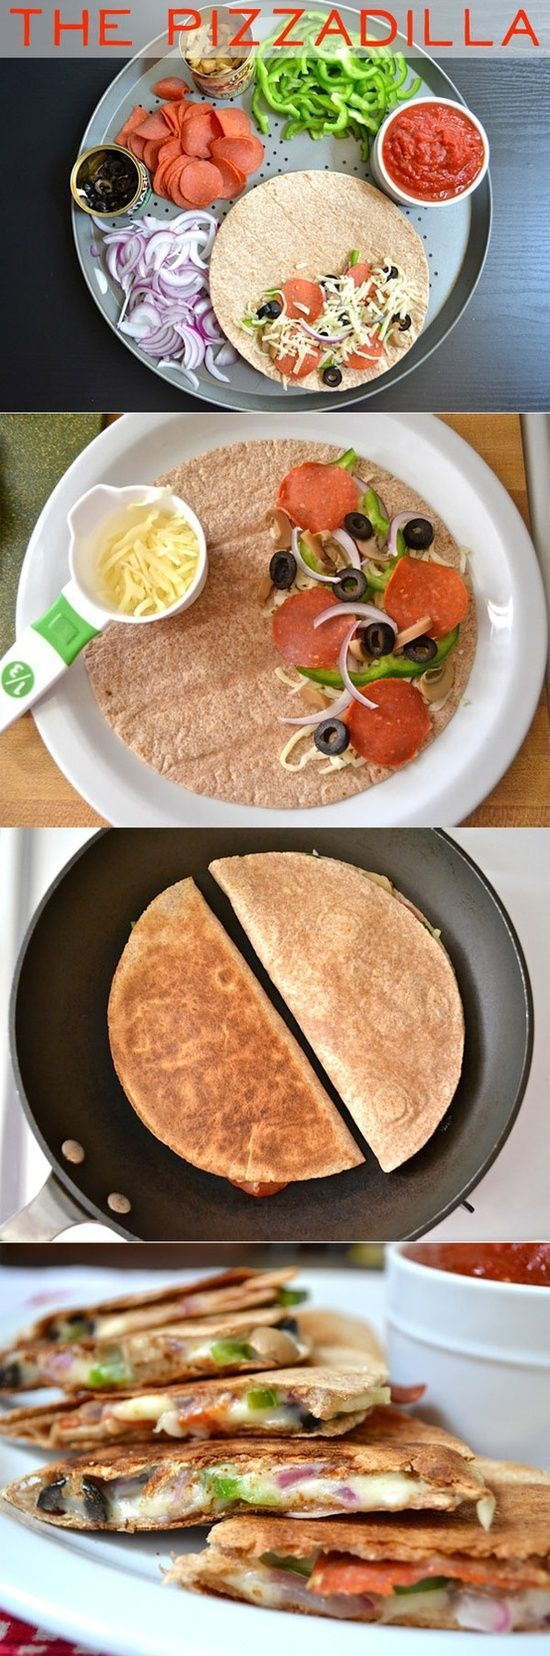 Pizzadillas - healthy pizza option